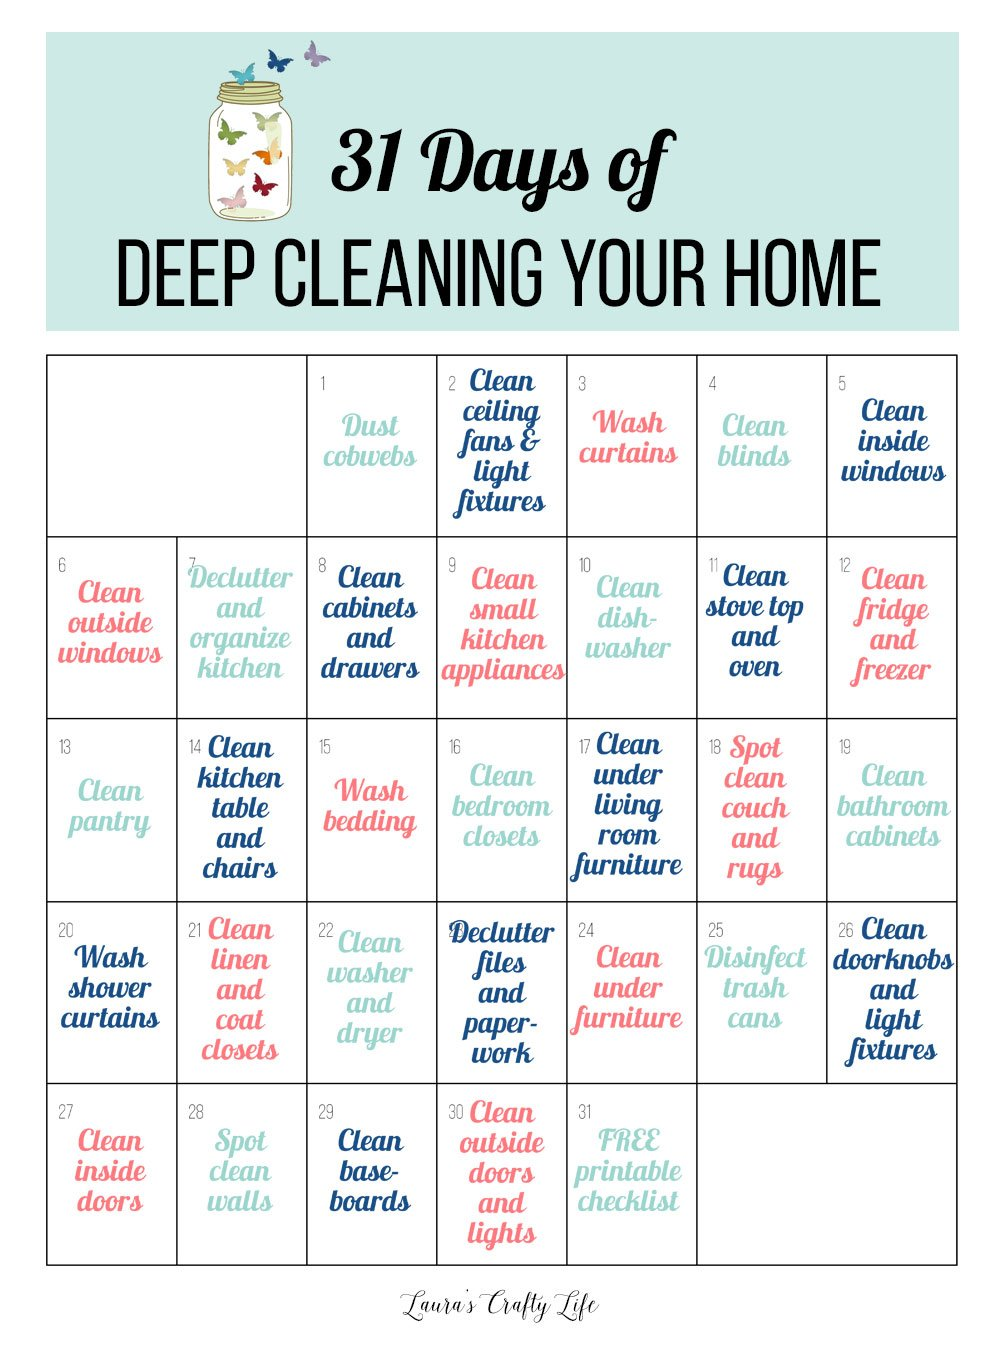 31 Days of Deep Cleaning Your Home